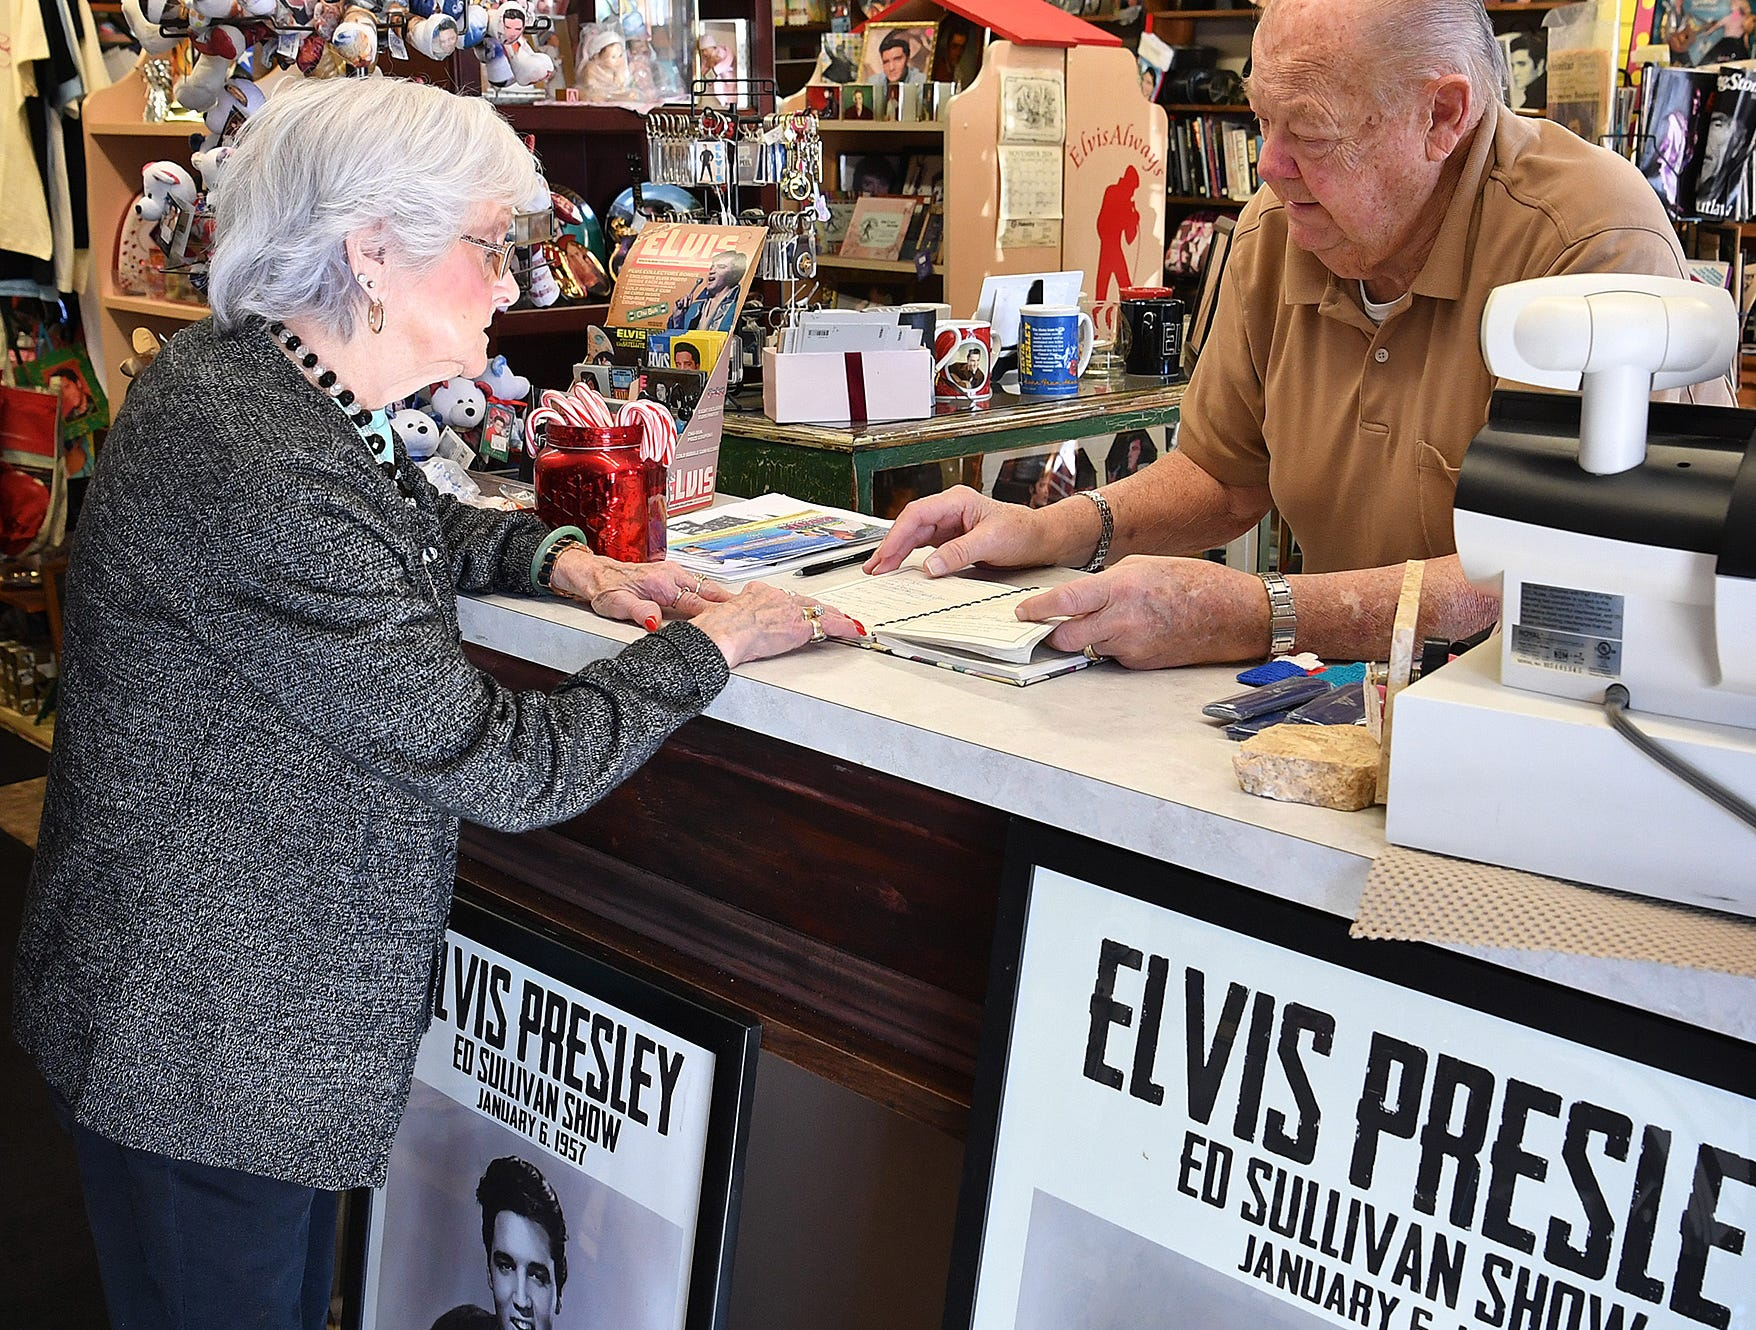 Wally and Margaret Waller look over the guest registry at their store, Elvis Always Gifts and Collectibles. Visitors from around the world have shopped in their store that celebrates the King of Rock 'n Roll.